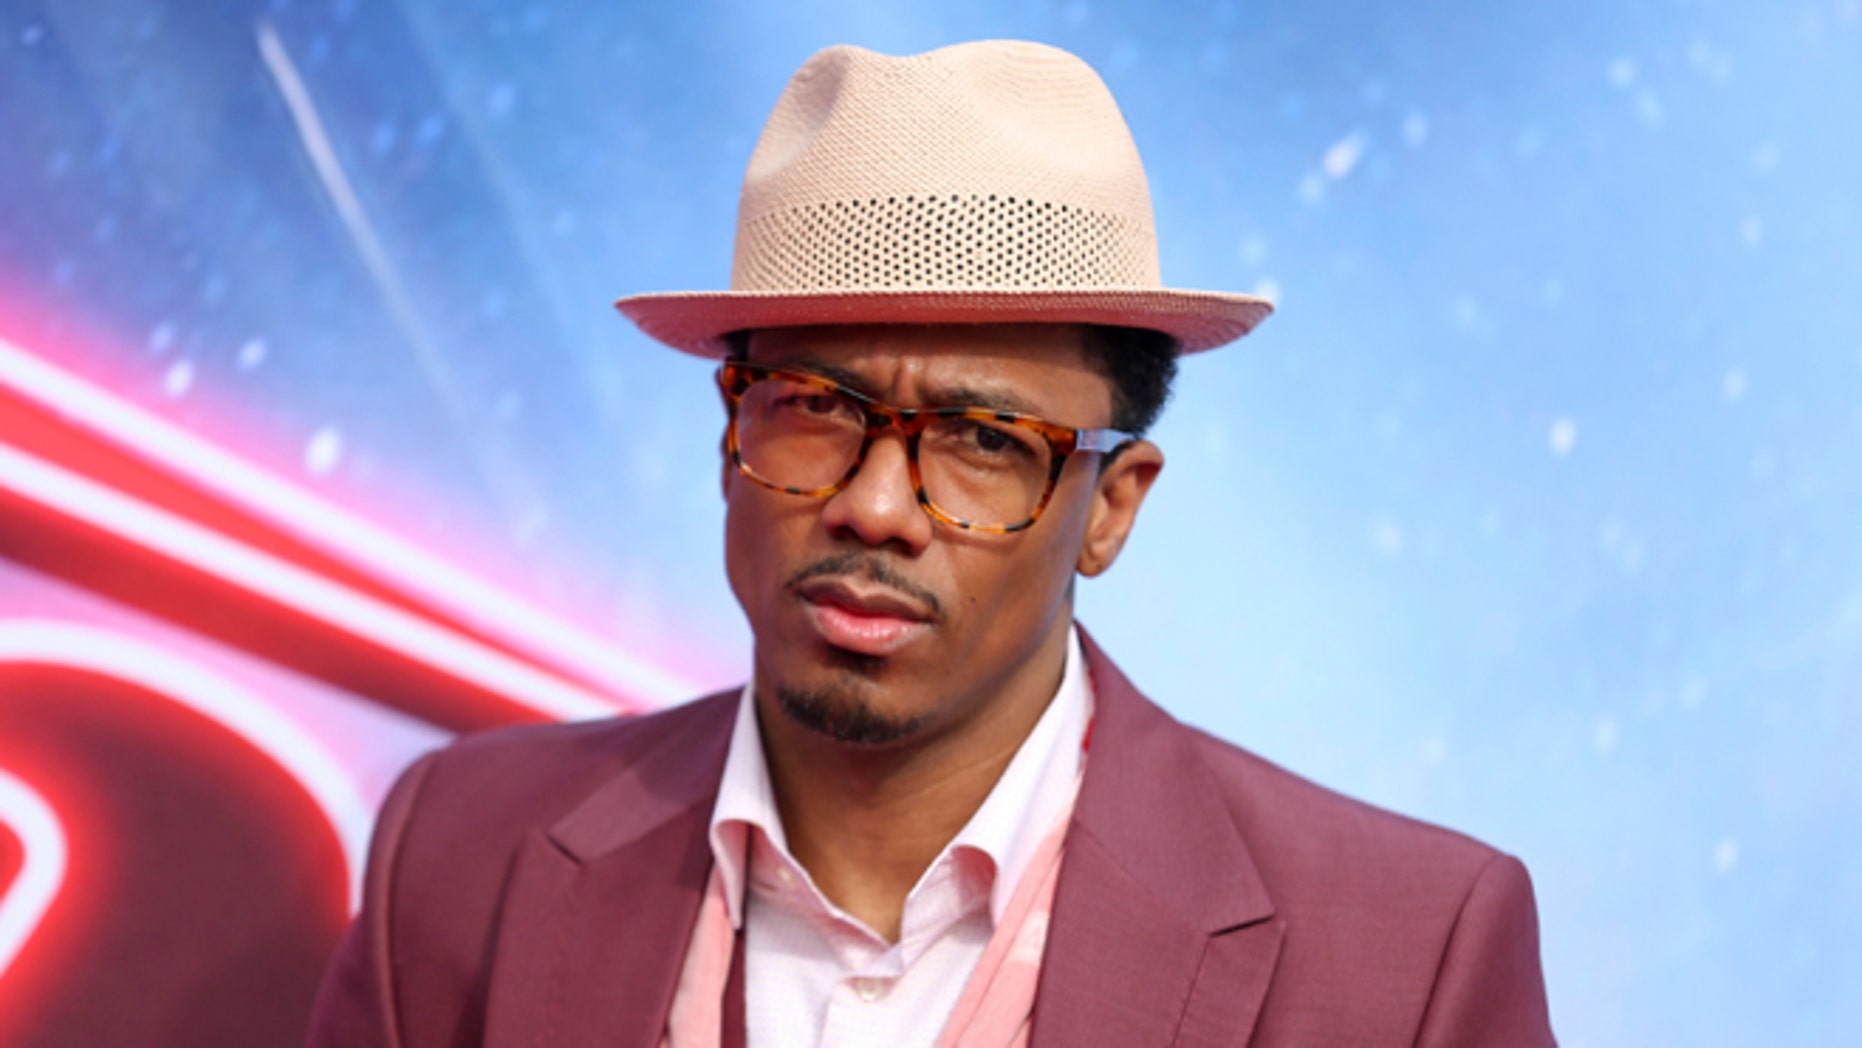 Nick Cannon is expecting a baby with an ex-girlfriend.